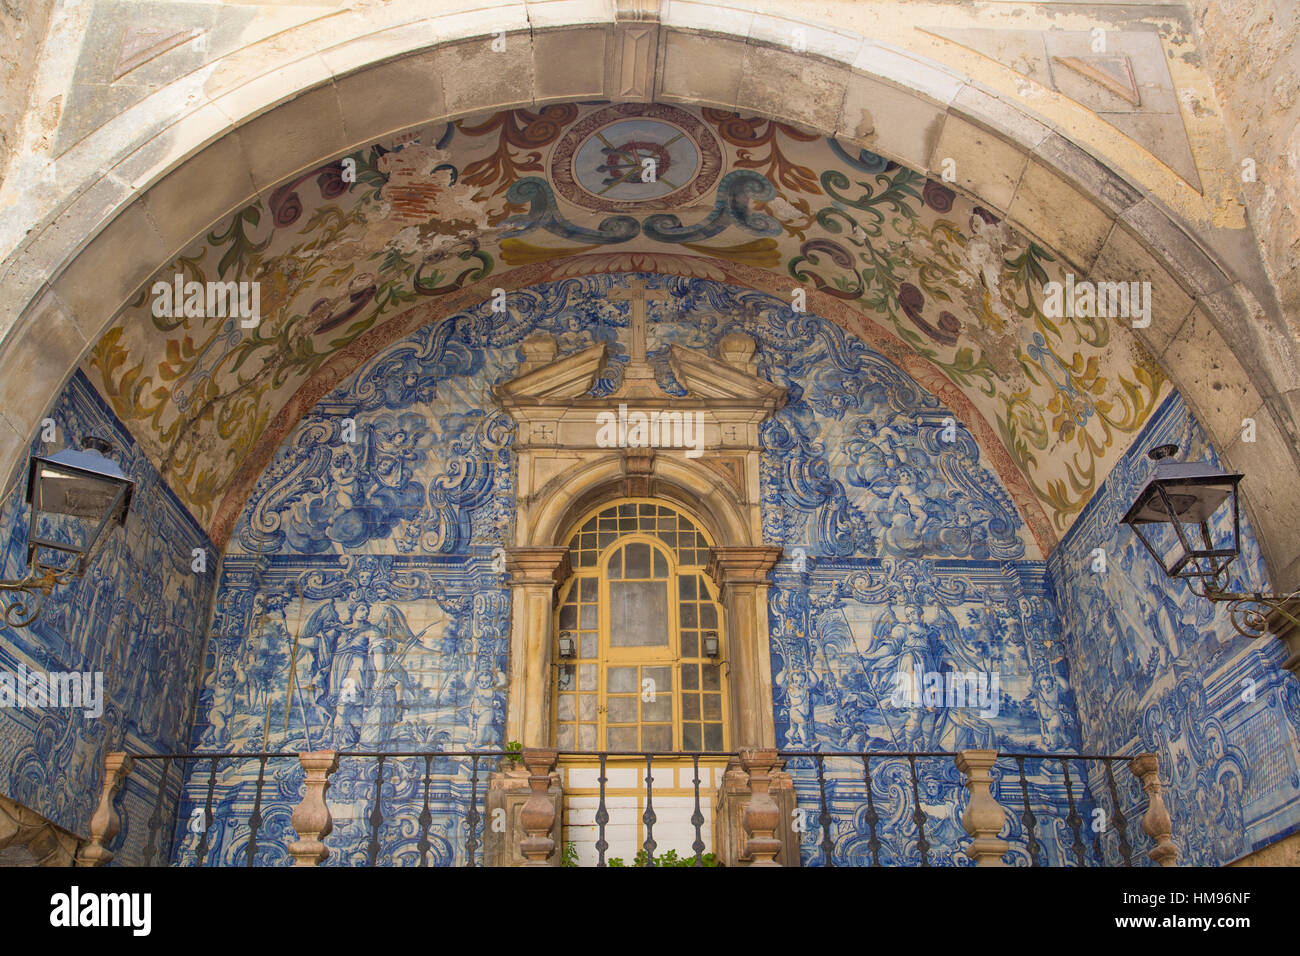 Oratory of Our Lady of Piety, Town Gate, Obidos, Portugal - Stock Image